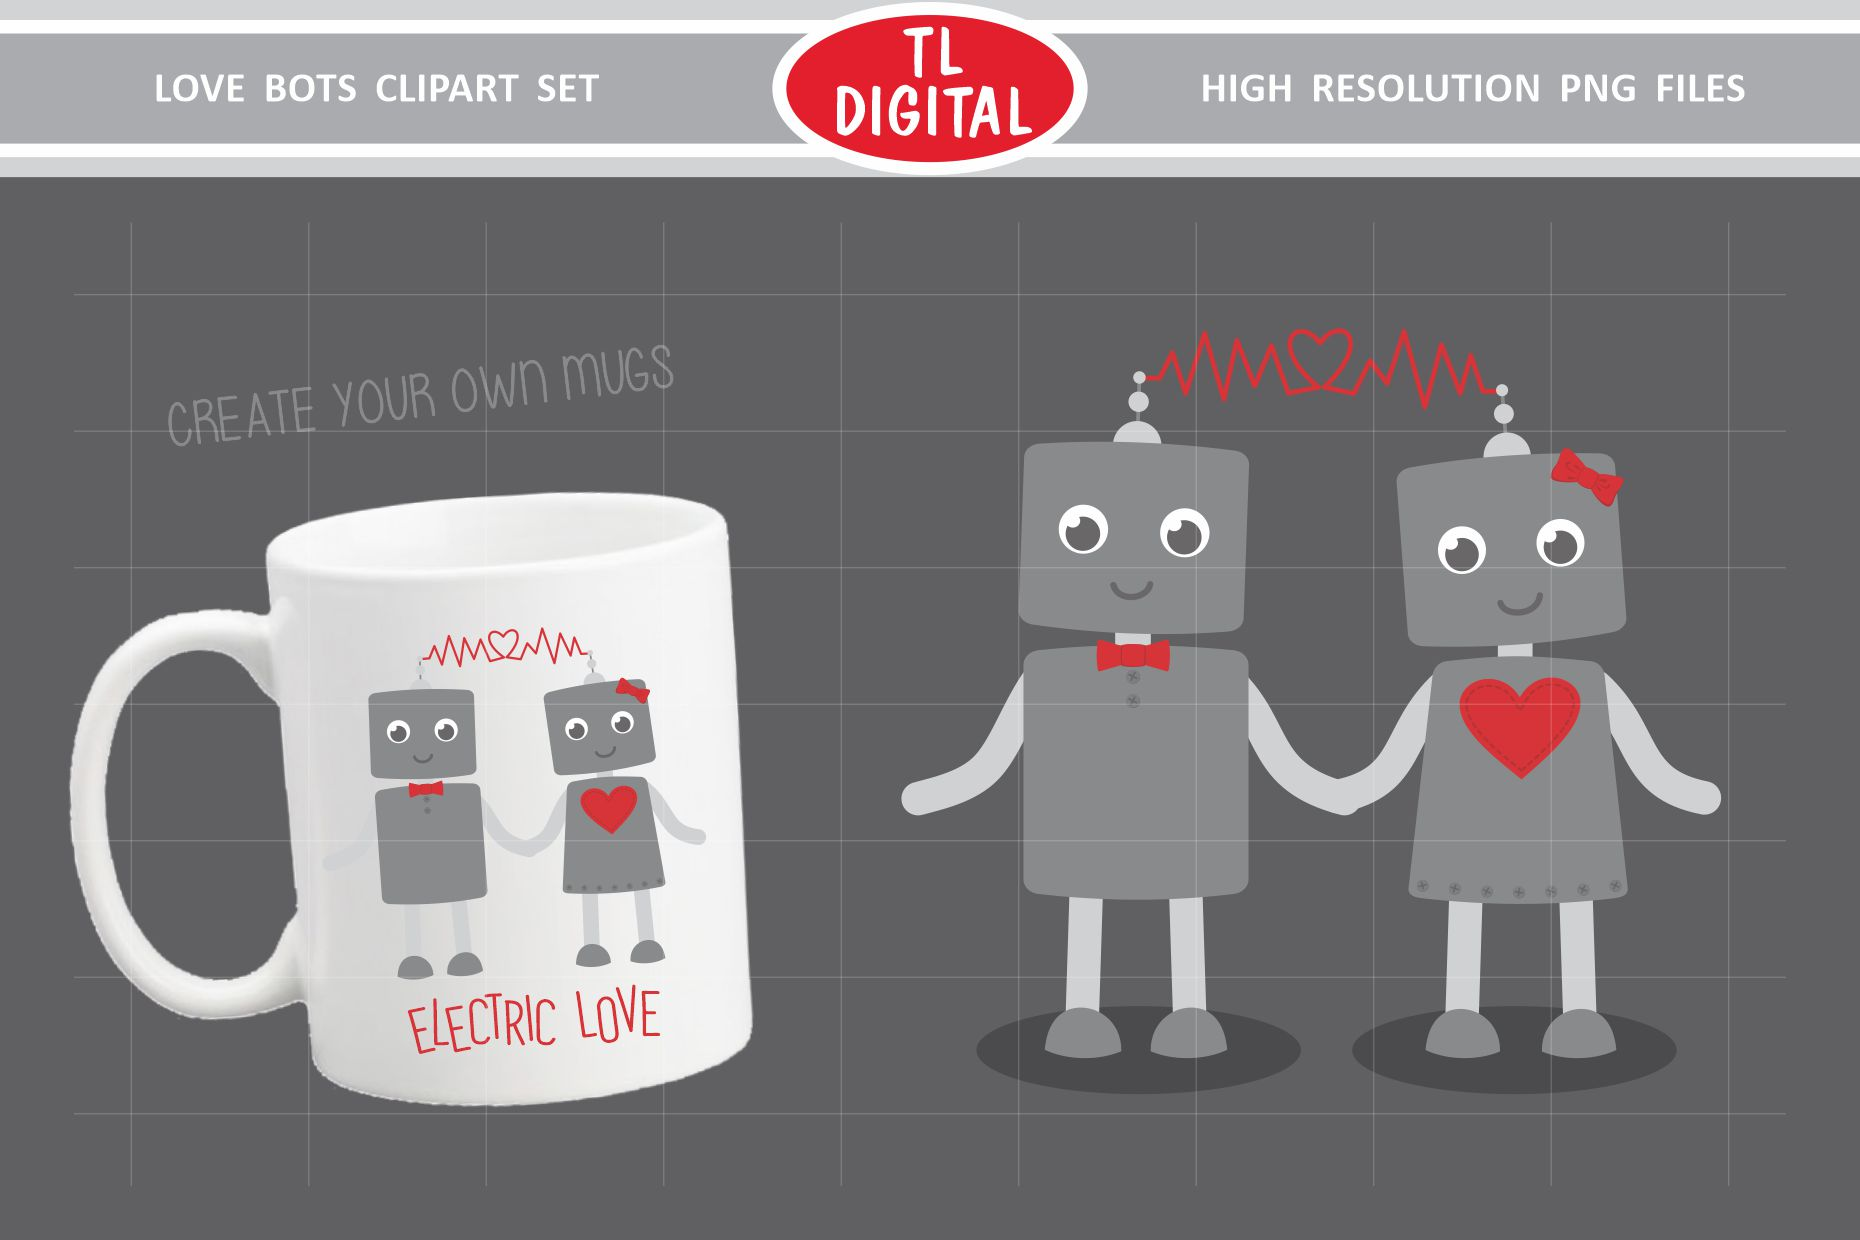 Love Robots Clipart Set - 13 Valentines PNG Graphics example image 4